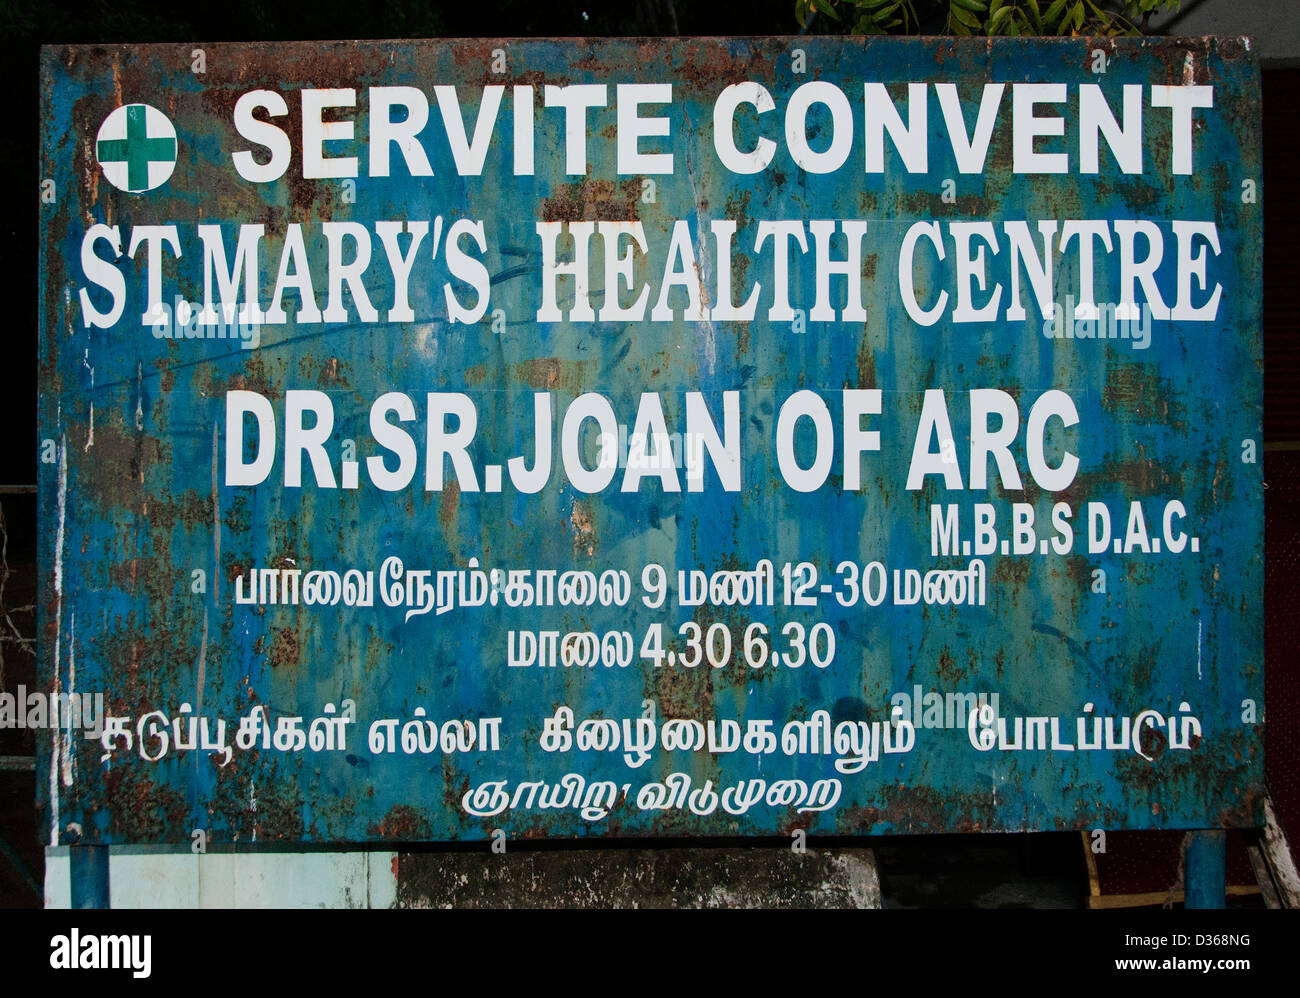 Servite Convent st Mar Health Centre Joan of Arc - Covelong  ( Kovalam or Cobelon ) India Tamil Nadu - Stock Image